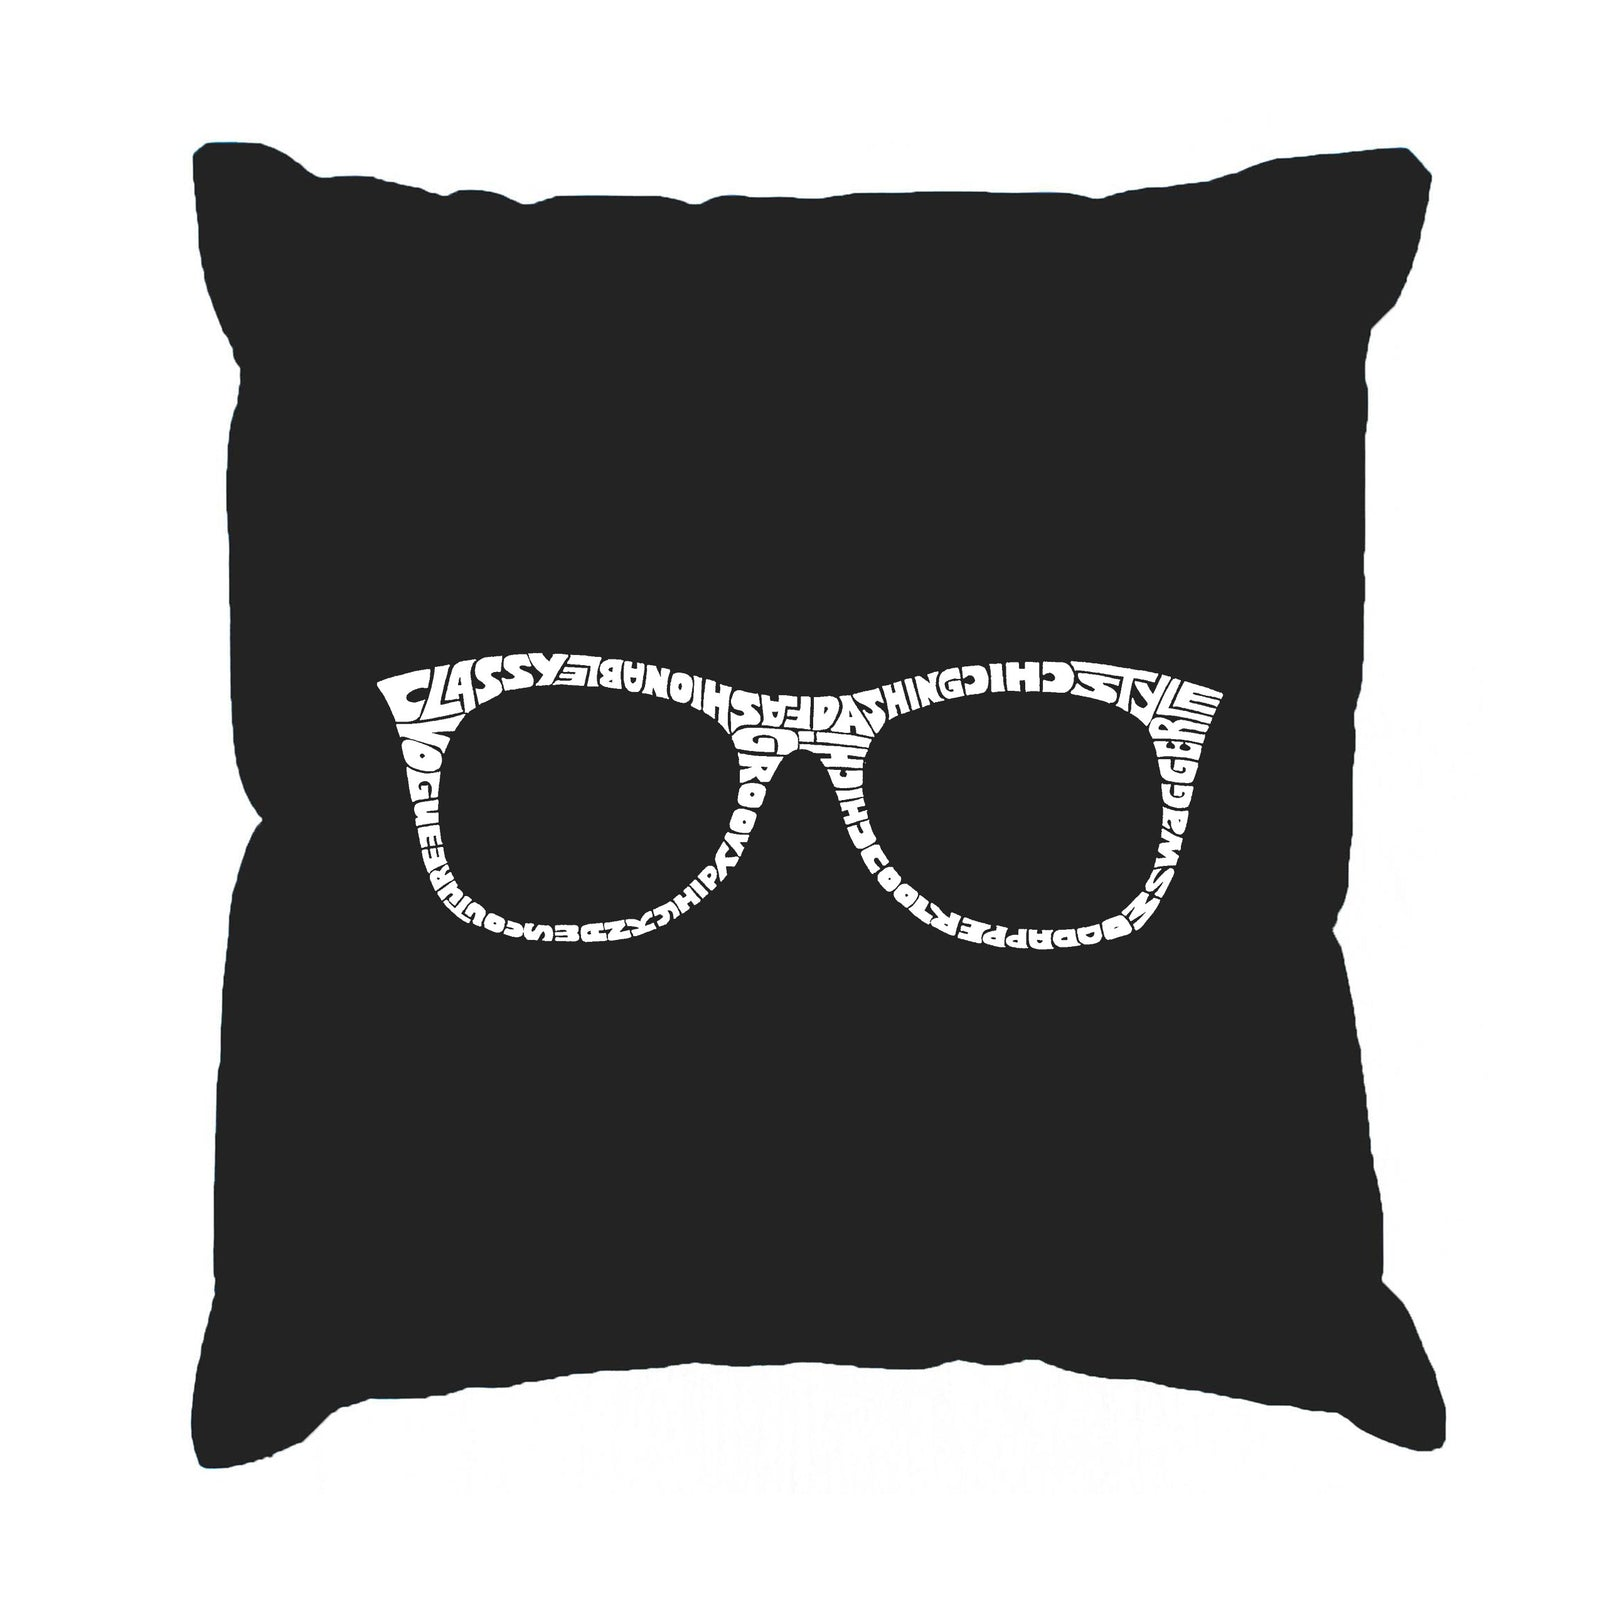 Throw Pillow Cover - SHEIK TO BE GEEK